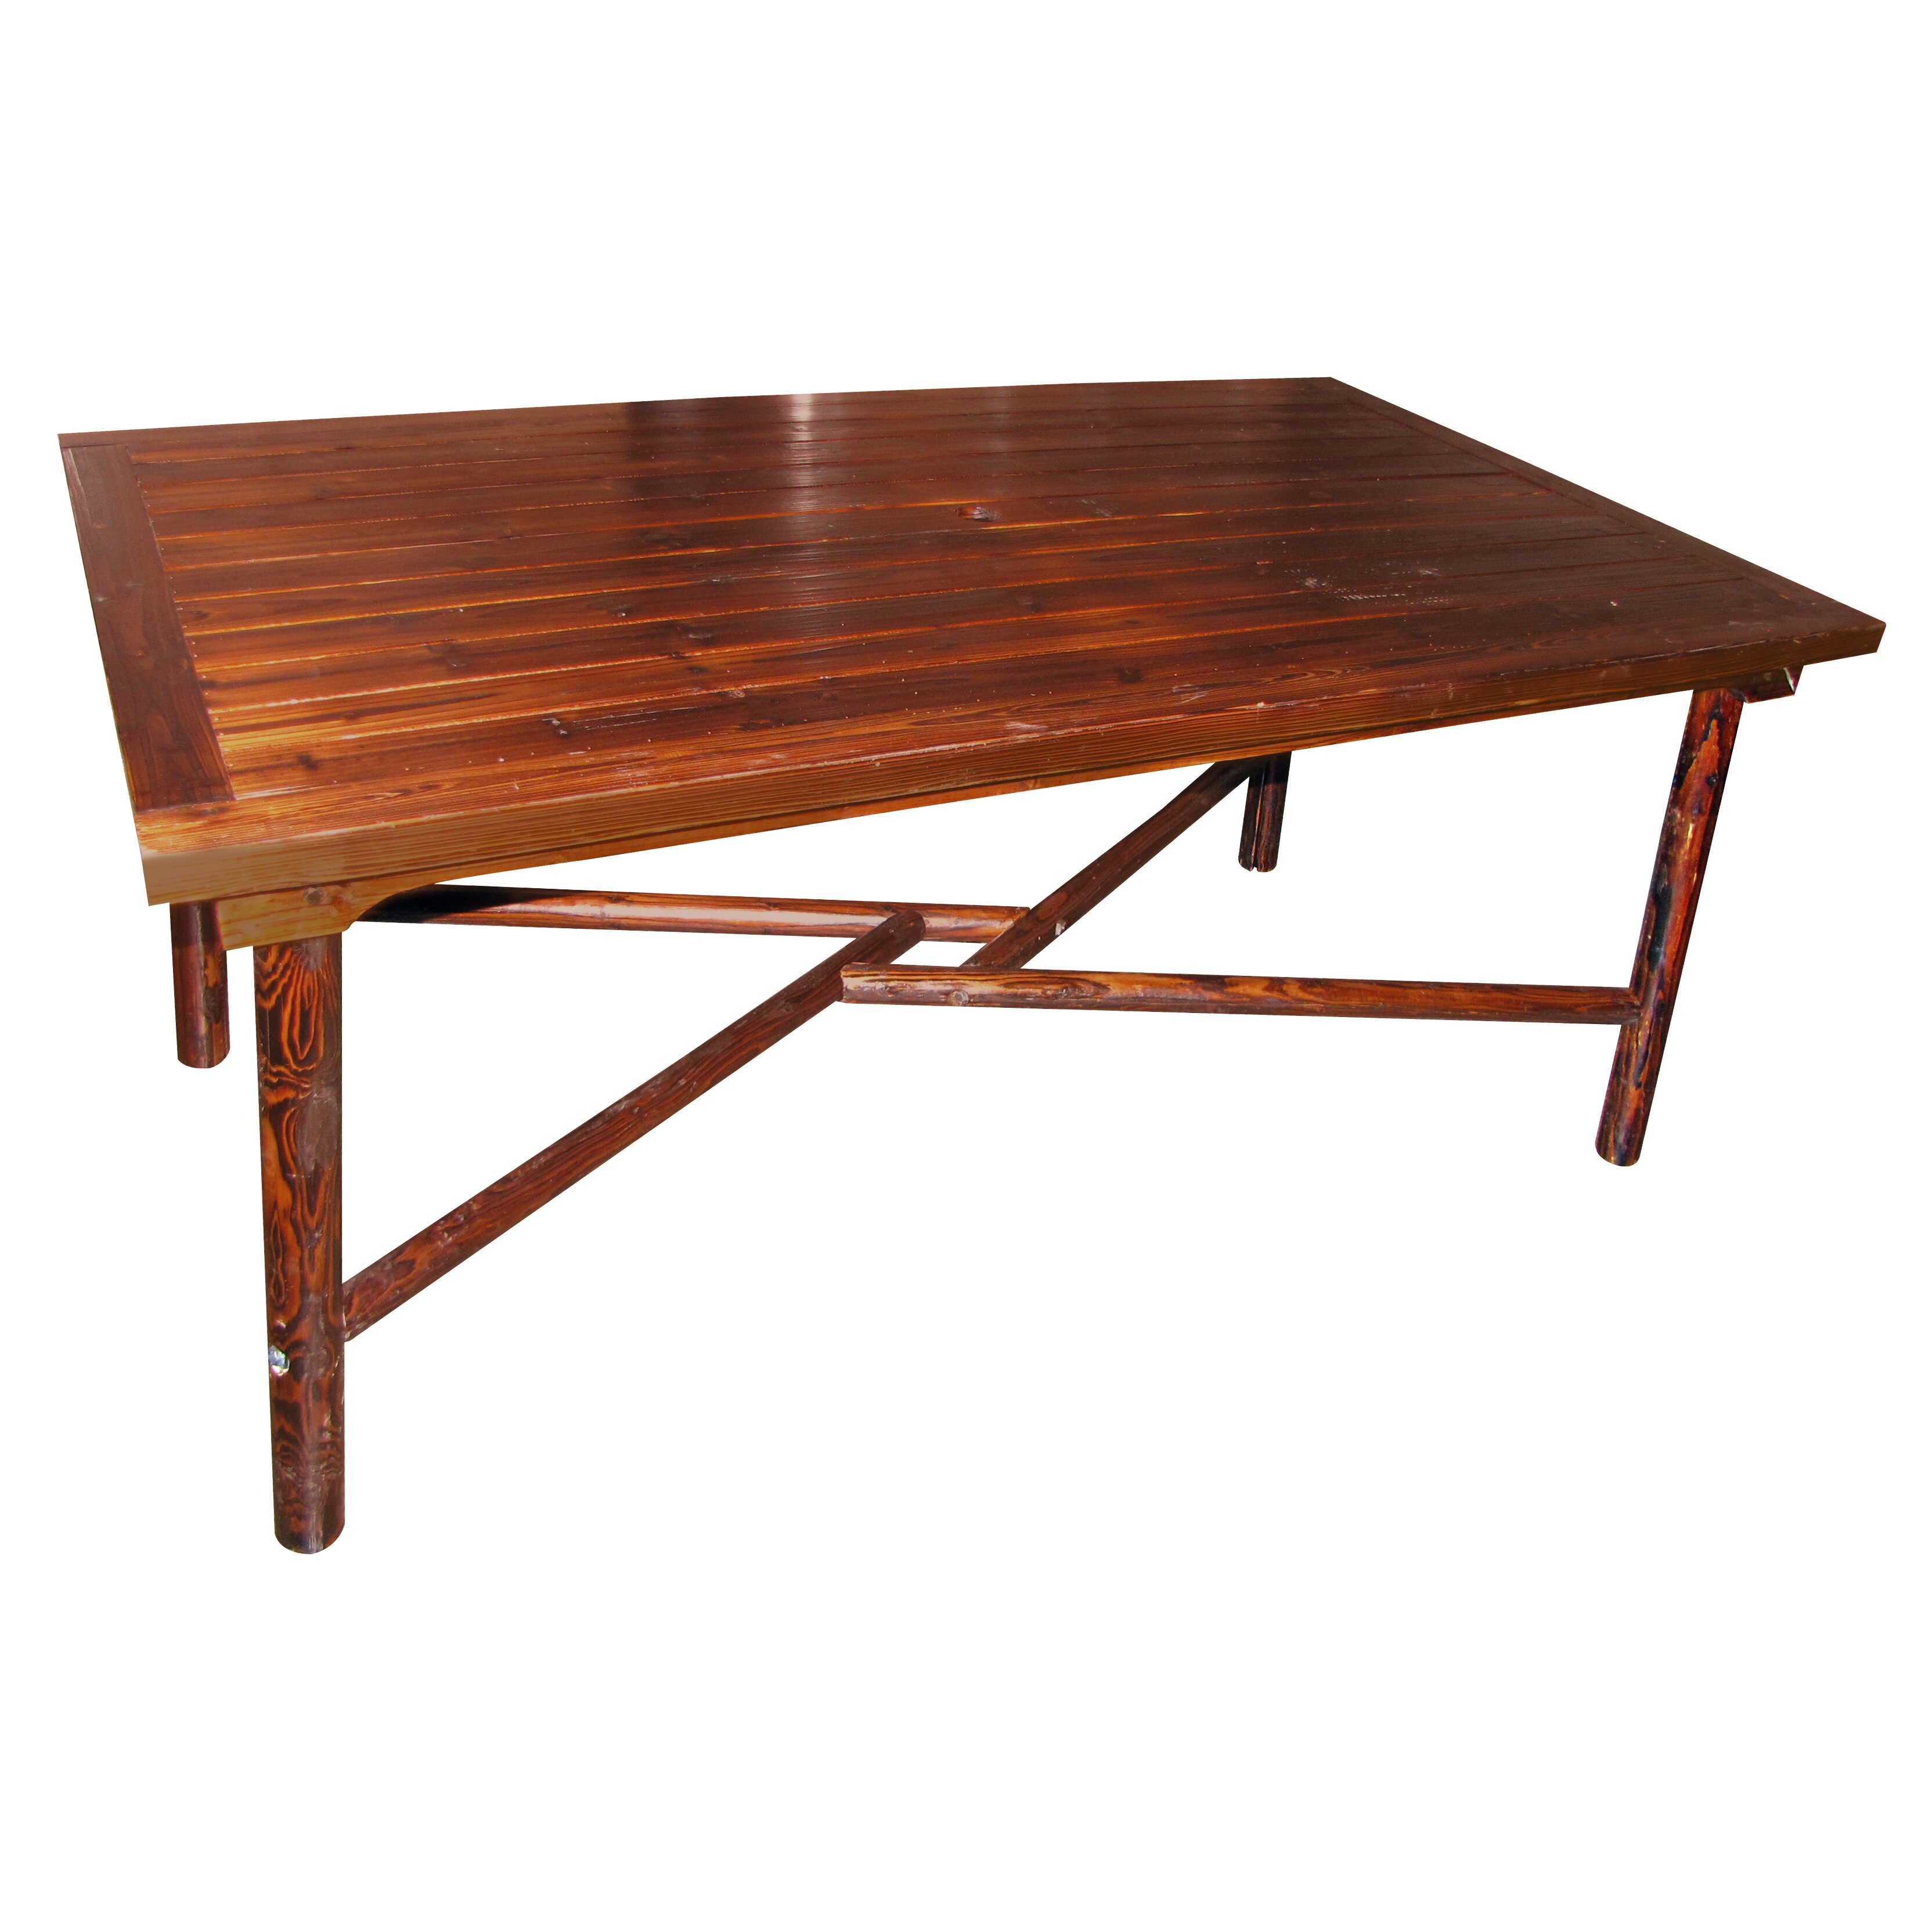 Leighcountry char log dining table wayfair for Wayfair dining table